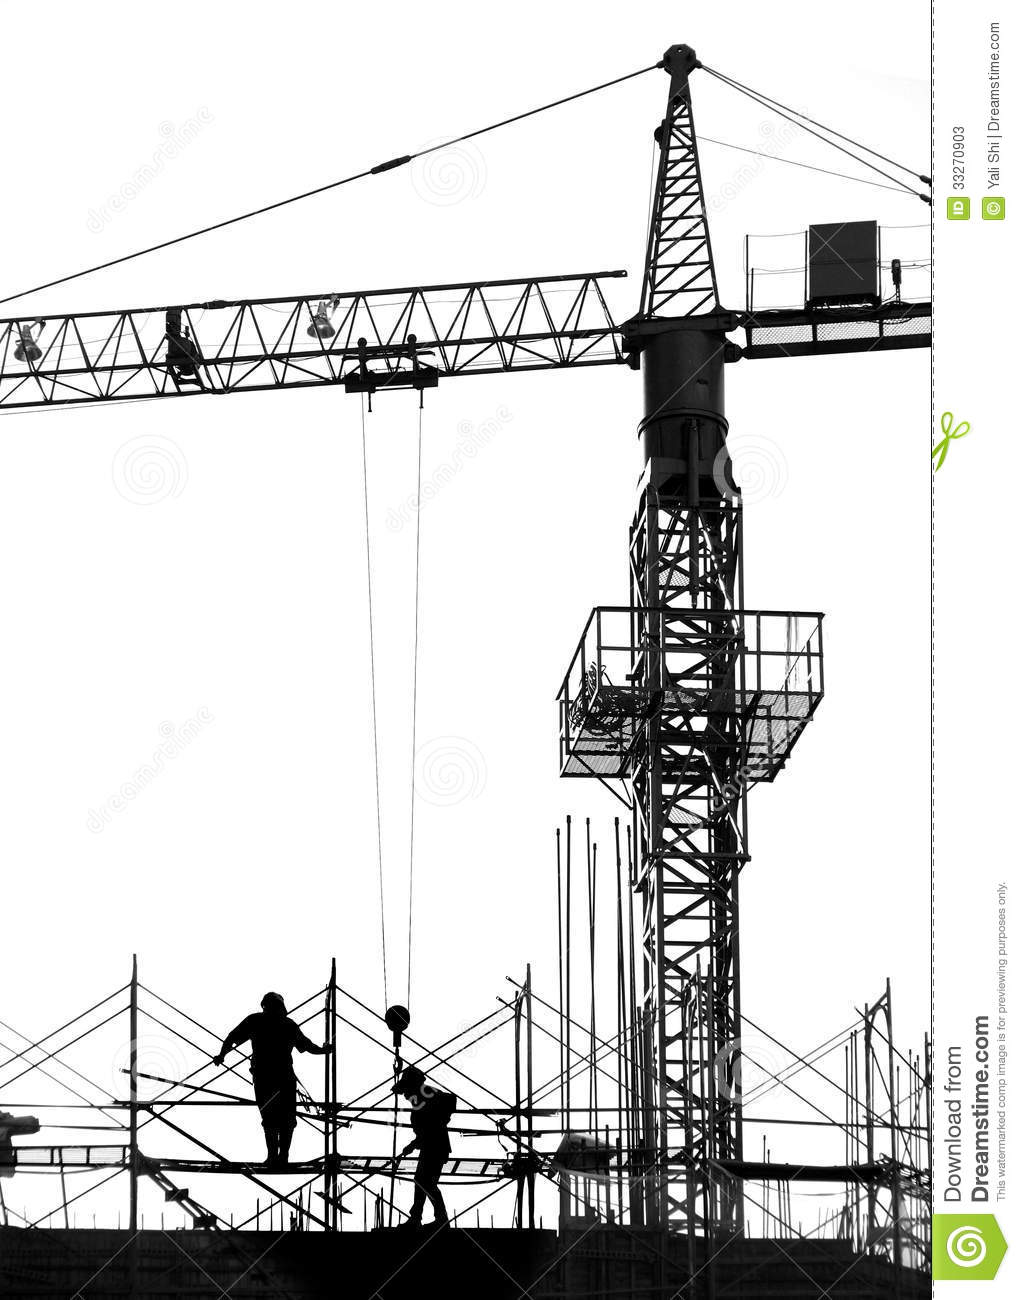 Building Construction Silhouette Clipart.